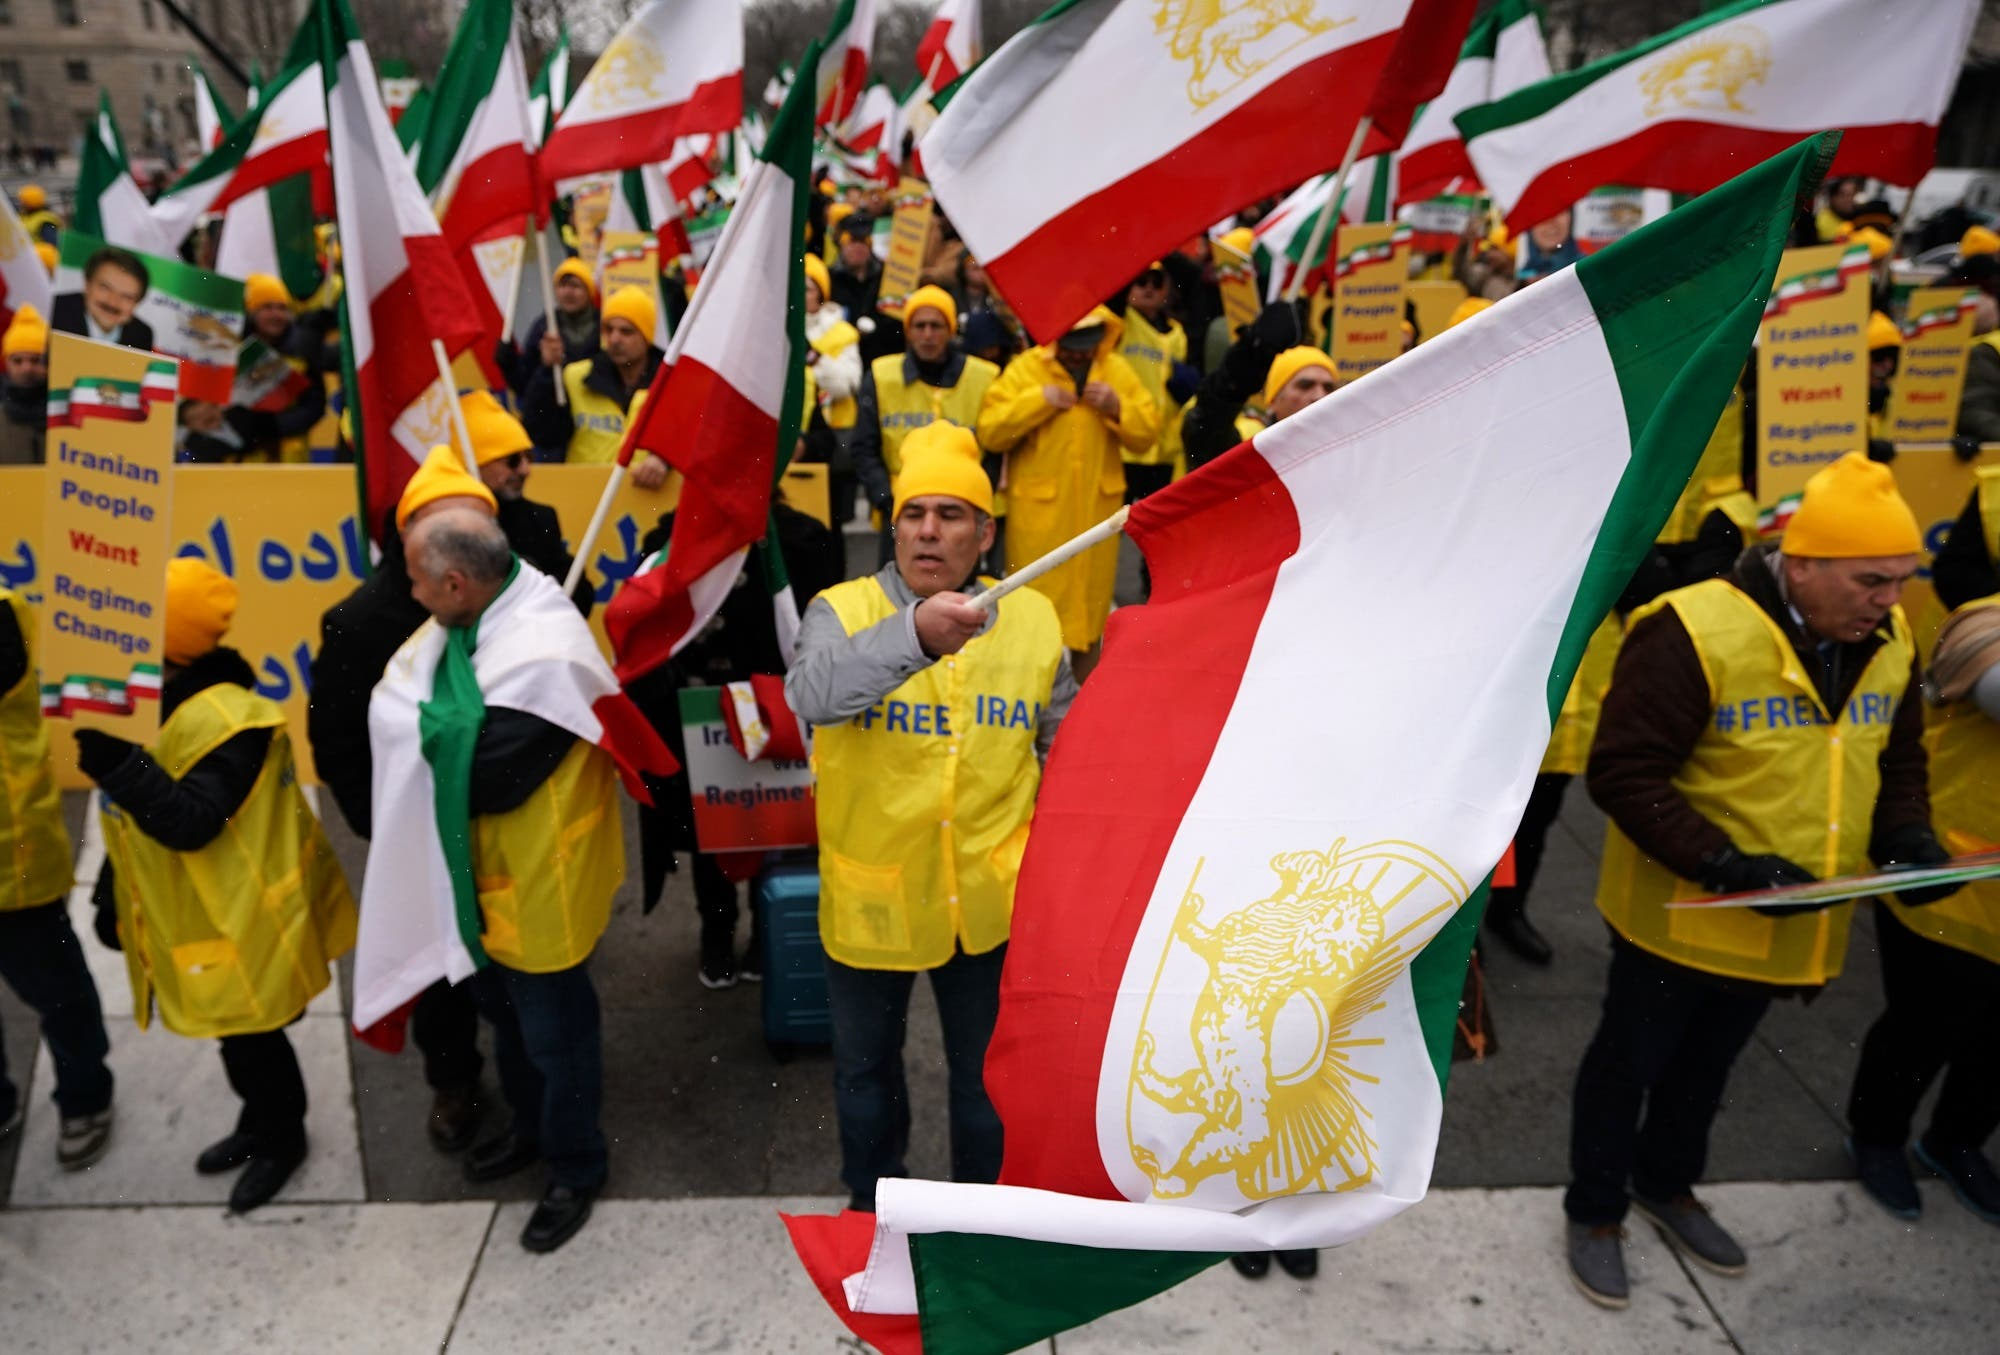 """The Organization of Iranian-American Communities holds a rally and march in support of """"the nationwide uprisings in Iran for regime change"""" on March 8, 2019 in Washington, DC. (AFP)"""